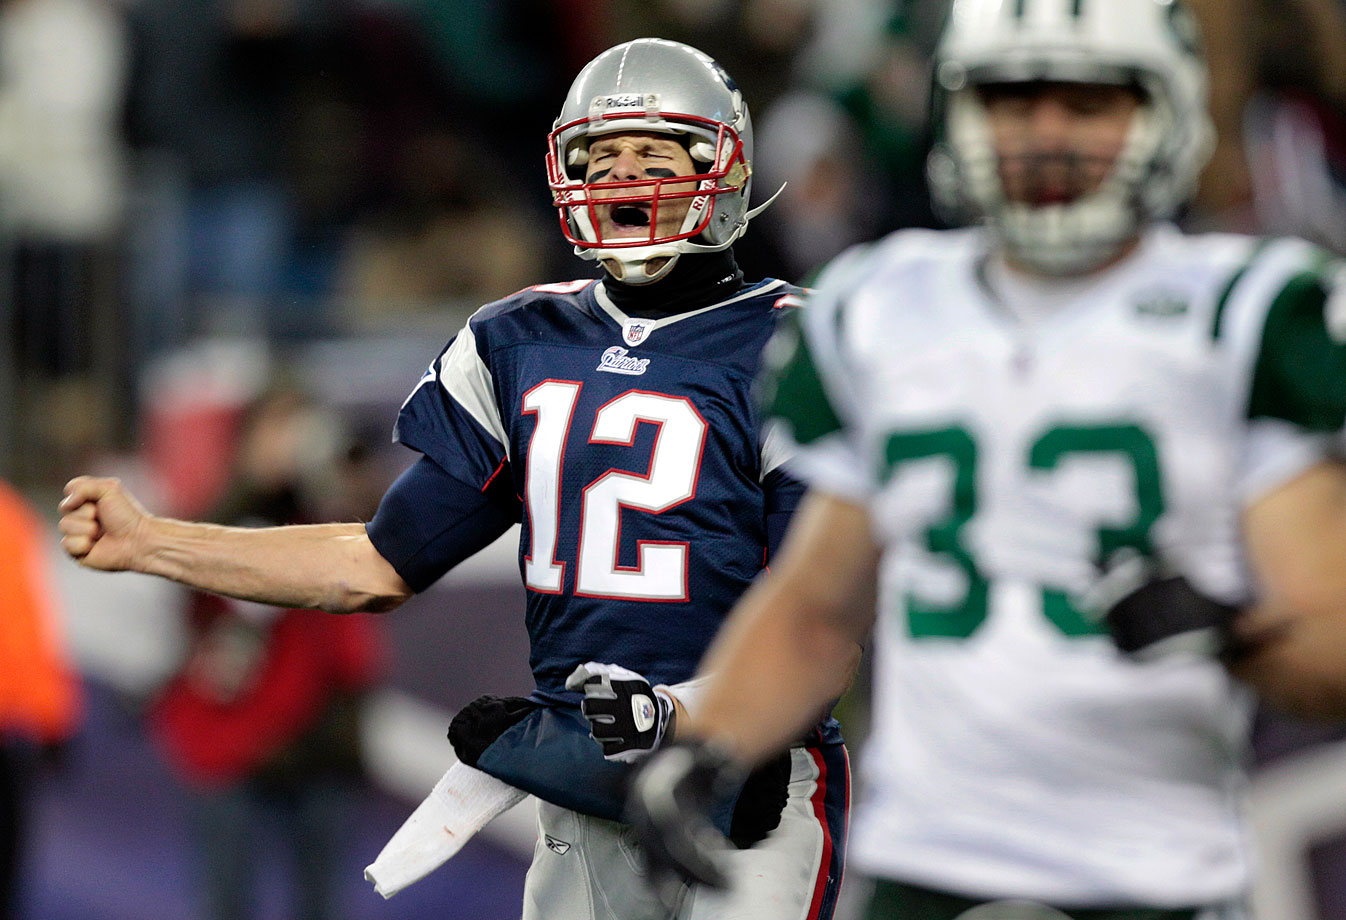 "Brady had a little fun with his least favorite team in 2010, when the Patriots dominated the Jets 45-3. The New England quarterback jawed at the New York sideline after two touchdowns, including once in the direction of Jets head coach Rex Ryan. Ryan was not amused with Brady's taunts. ""[Brady] took a shot at me by his antics on the field,"" Ryan said. ""He always points [to everybody] after he scores."""